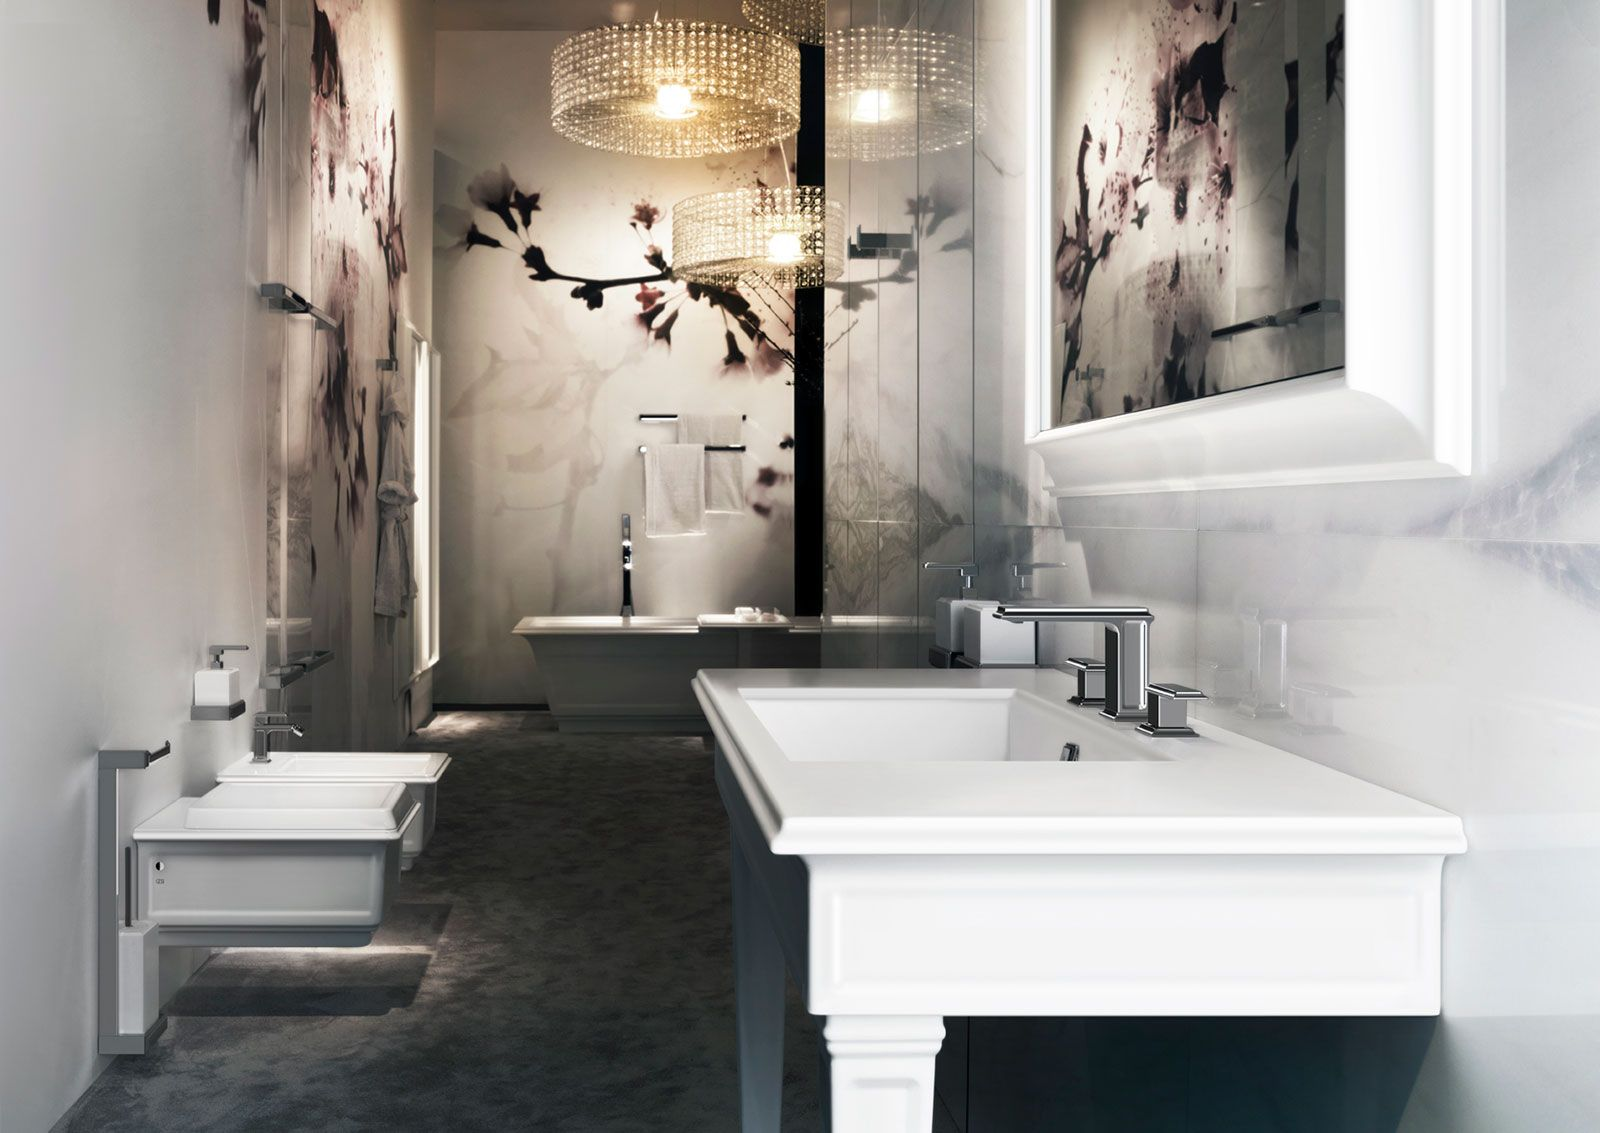 The Eleganza collection showcases bathroom fittings and